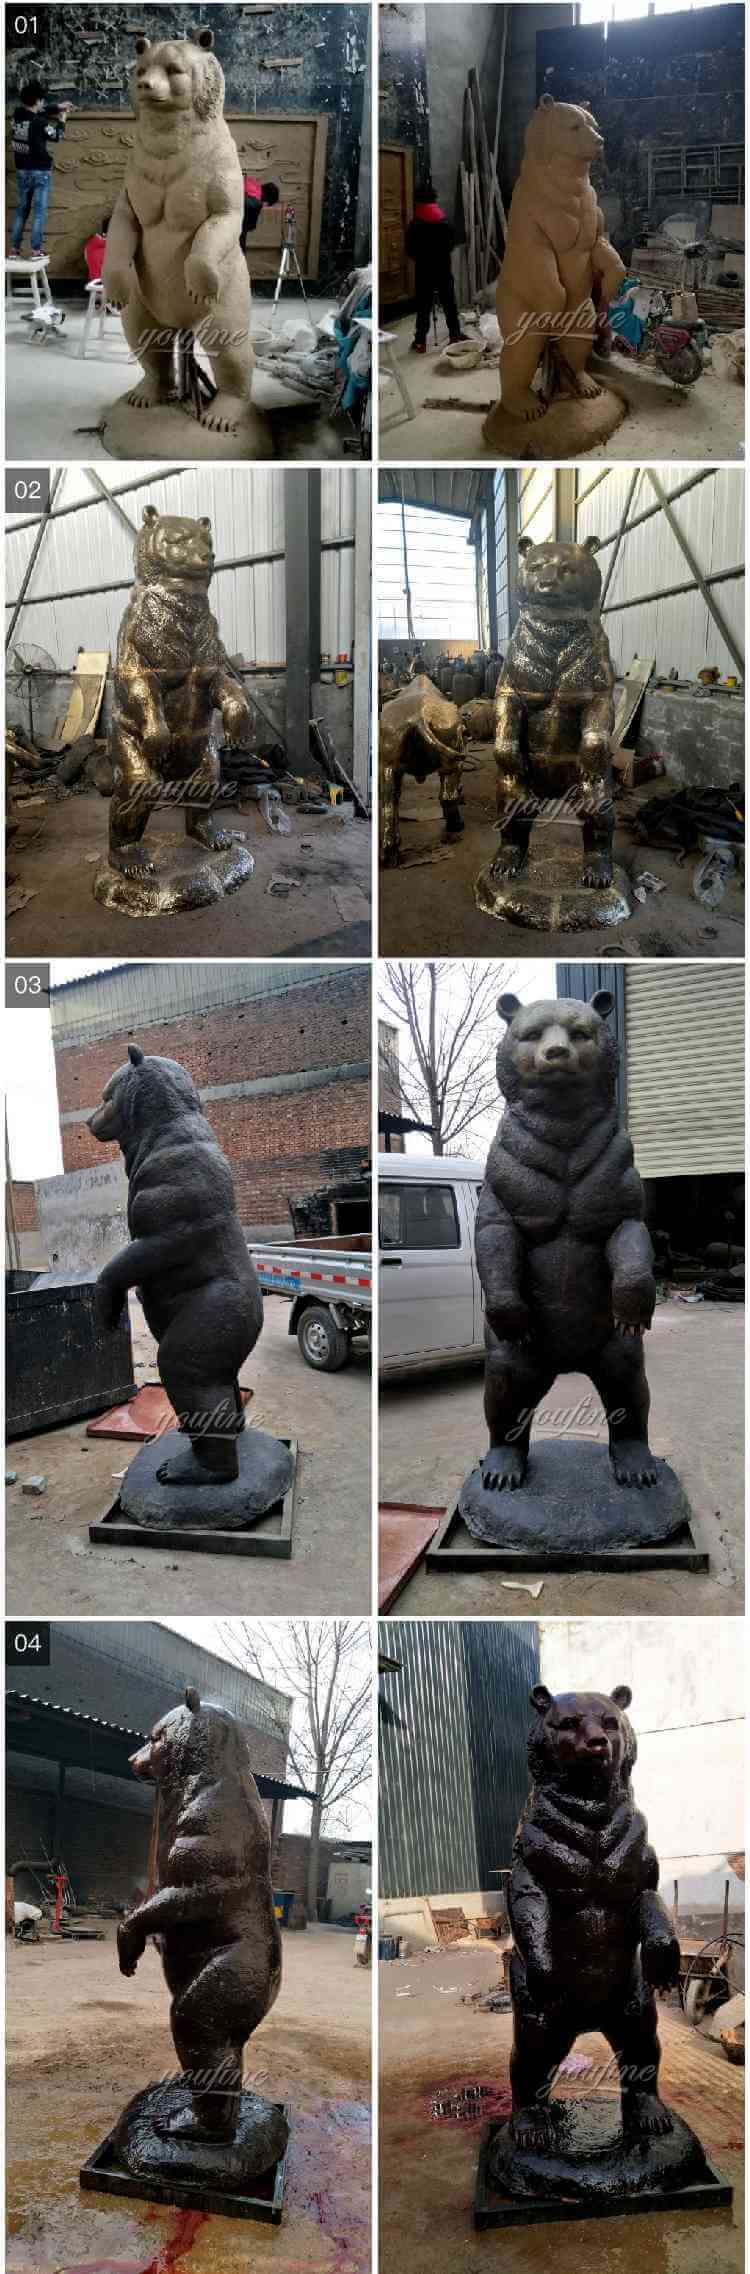 Three bronze bear group sculptures